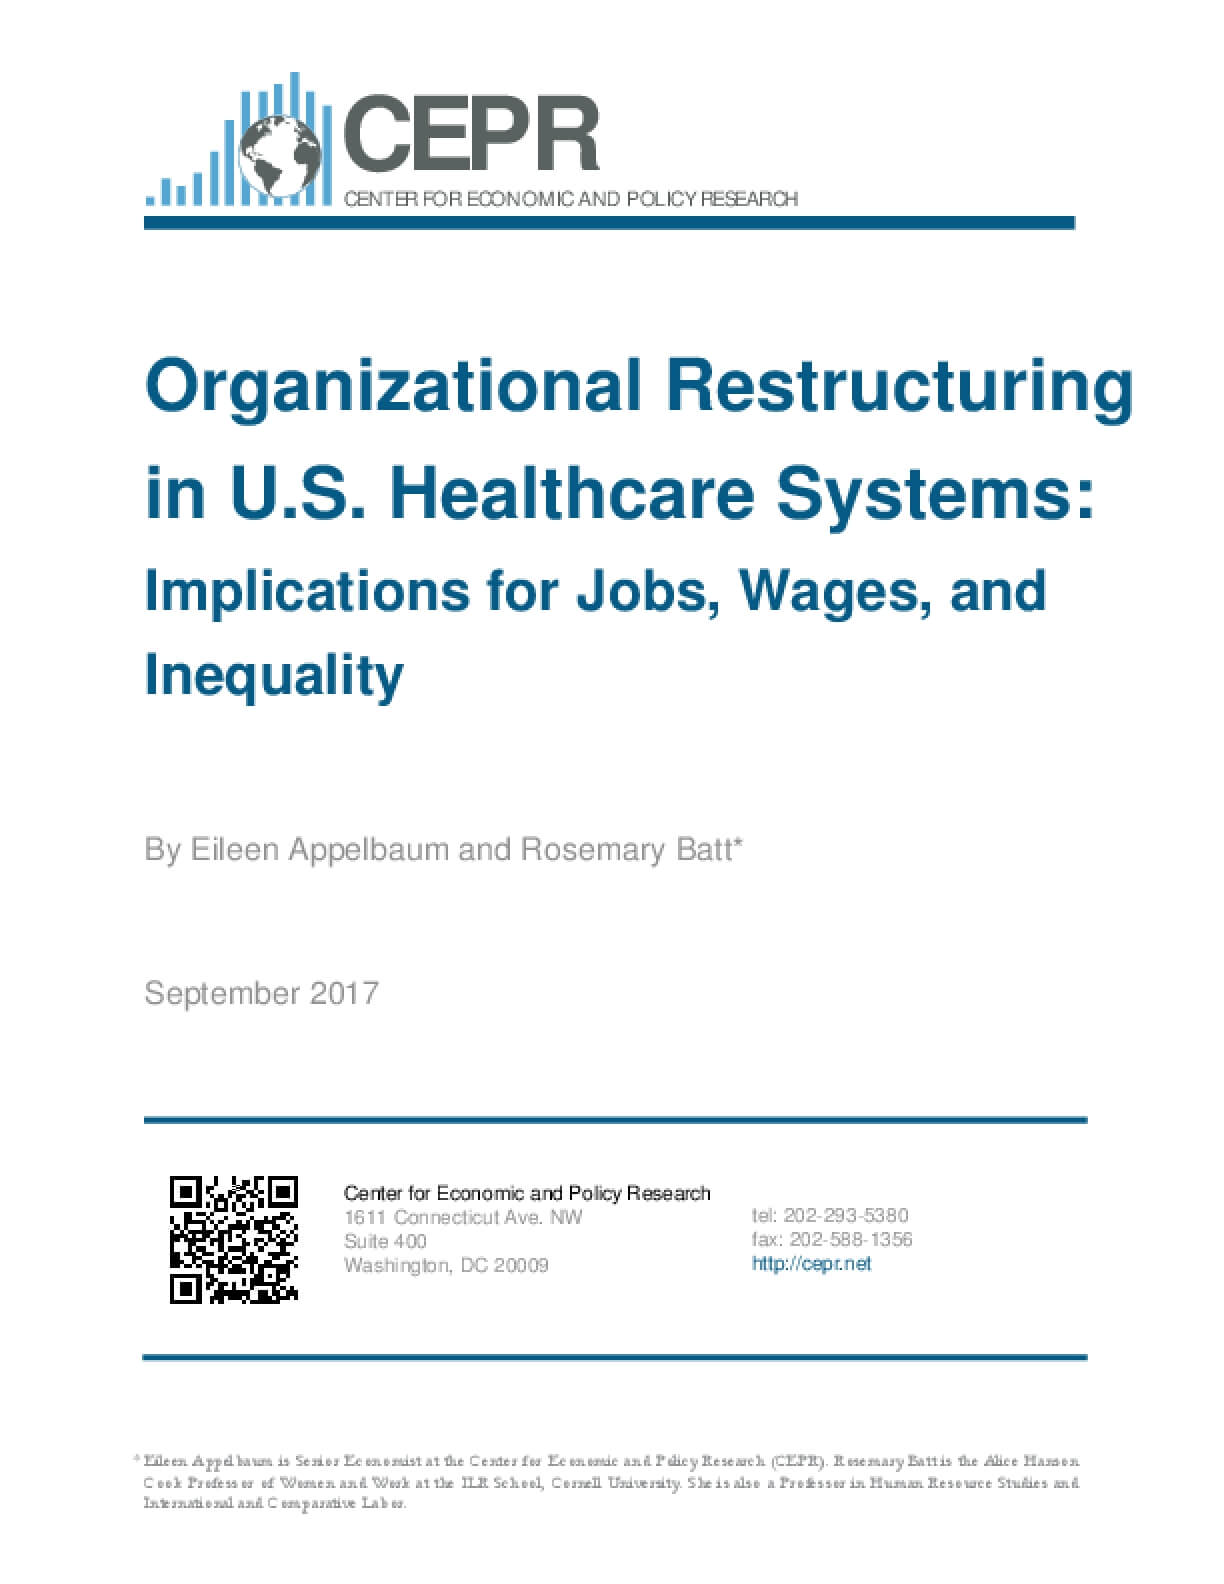 Organizational Restructuring in US Healthcare Systems: Implications for Jobs, Wages, and Inequality